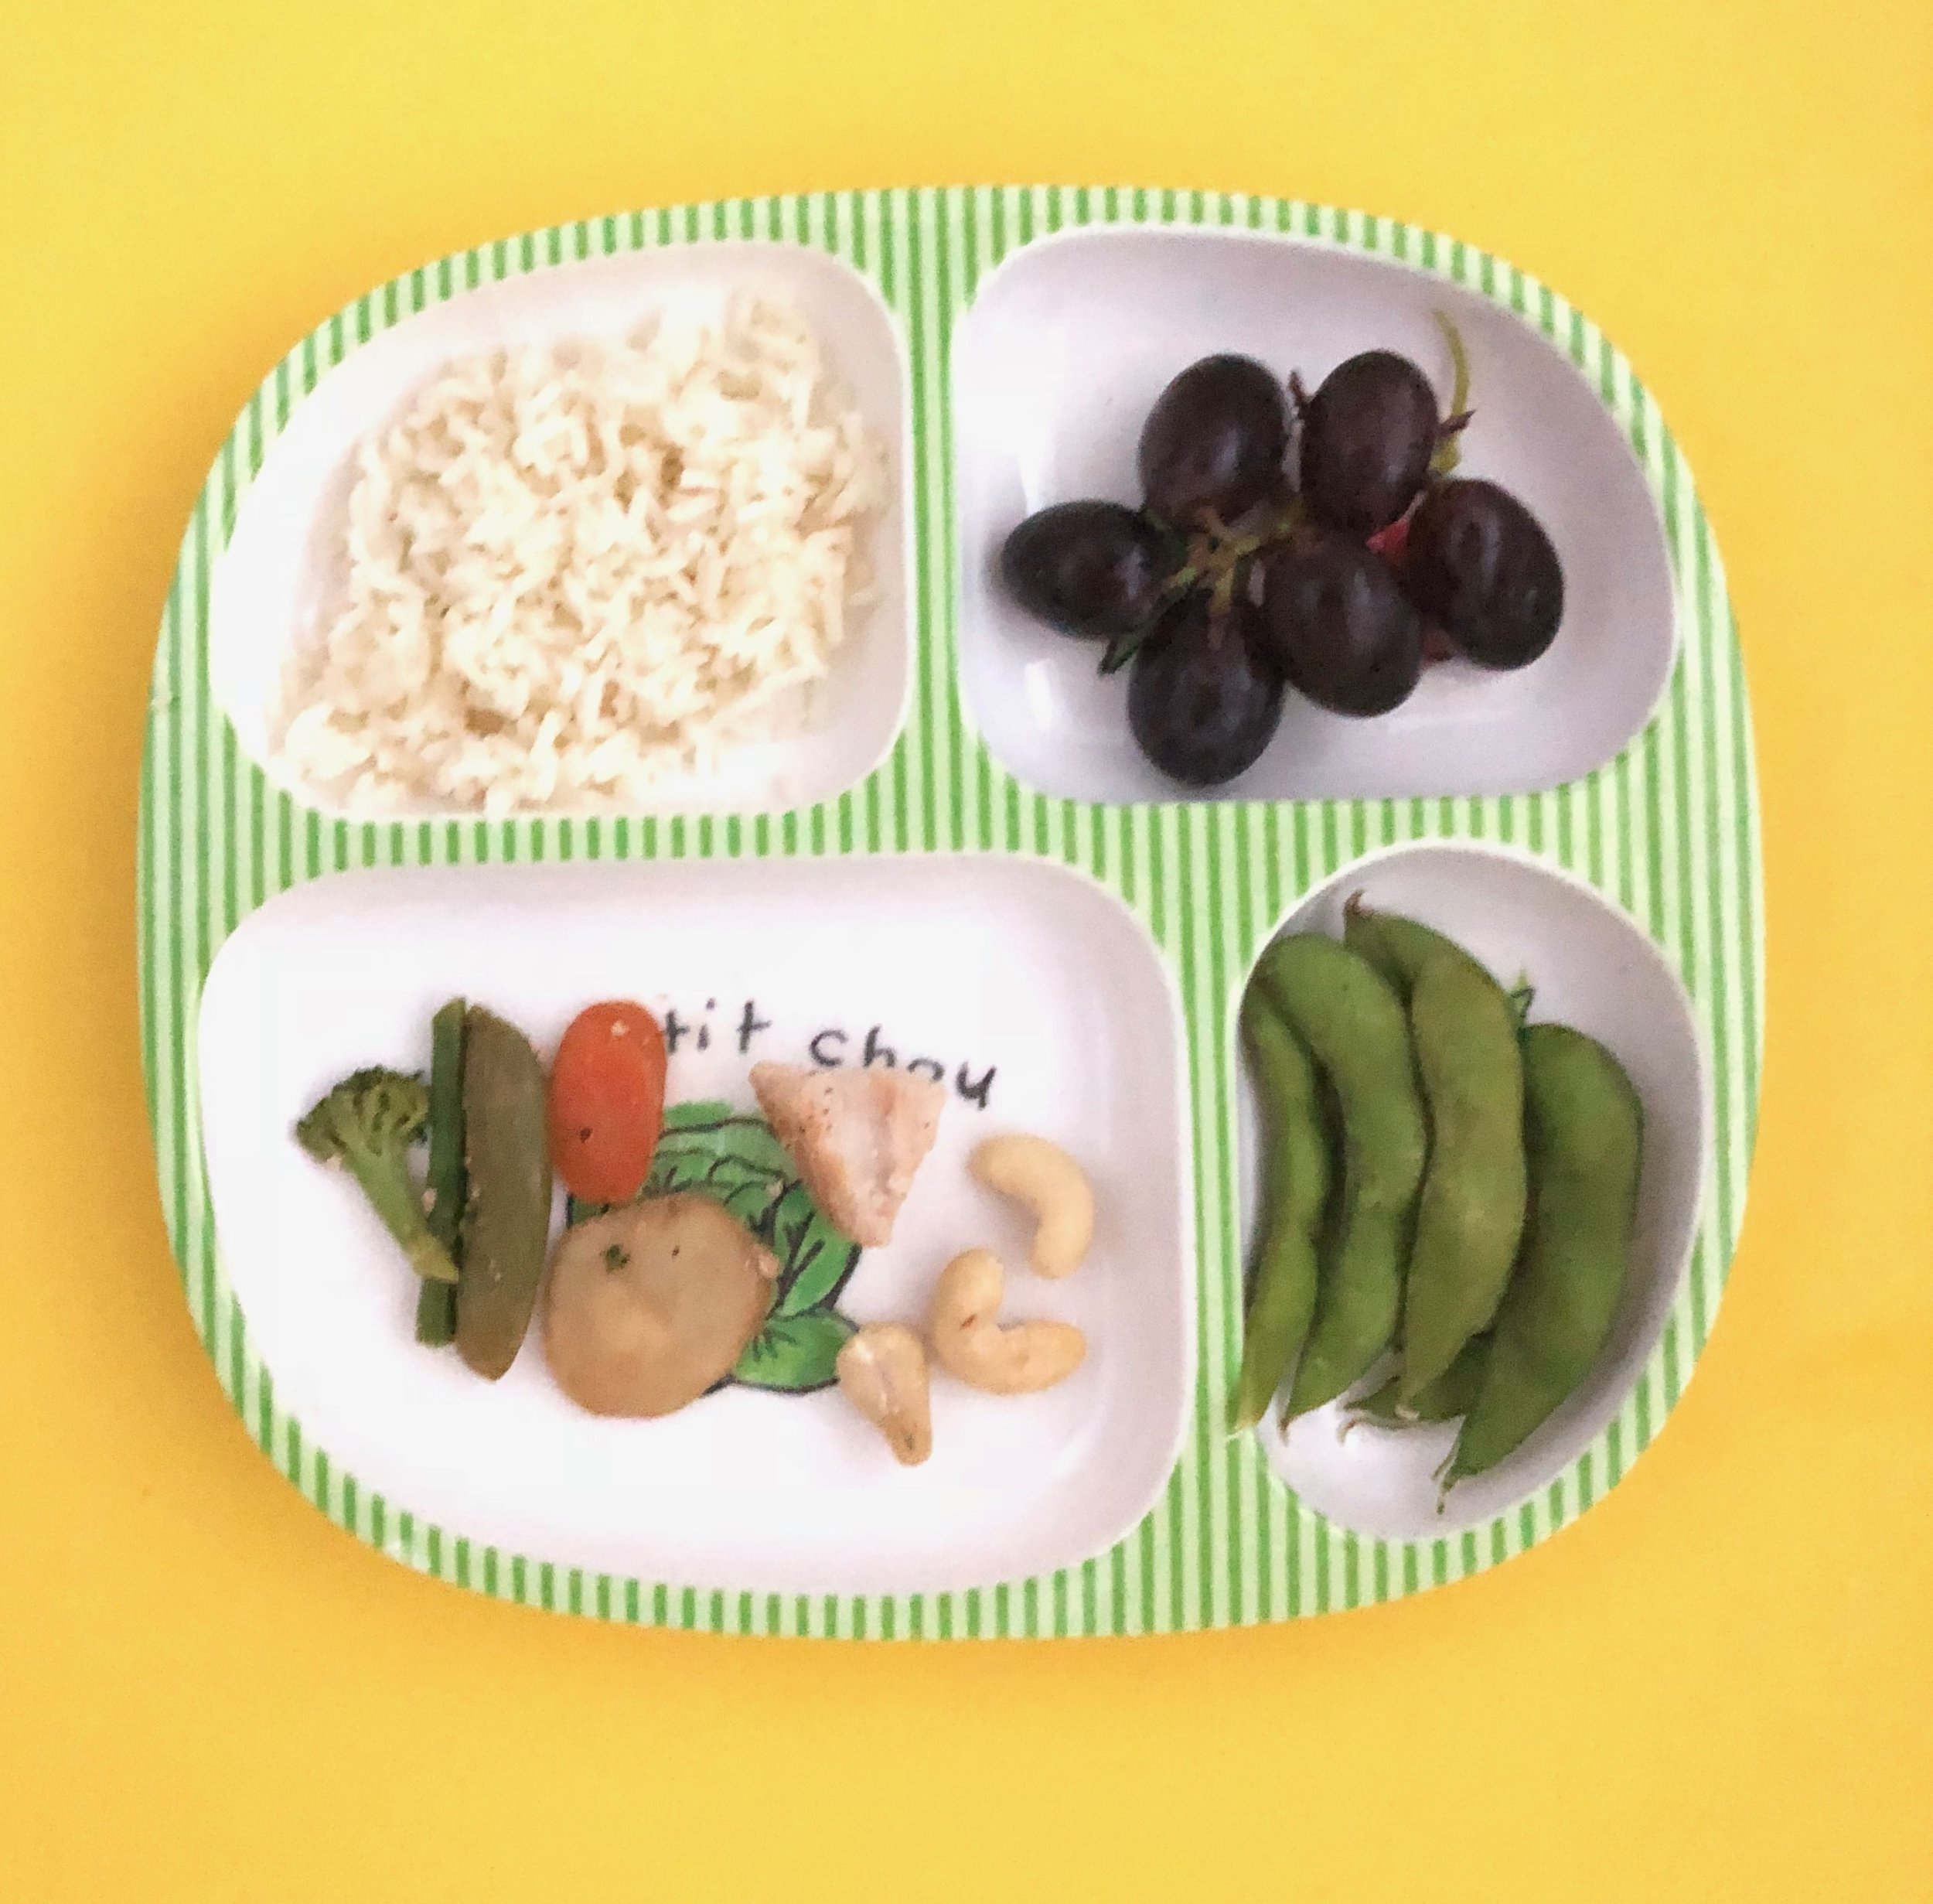 Kid's Plate from dinner: cashew chicken, rice, edamame, and grapes